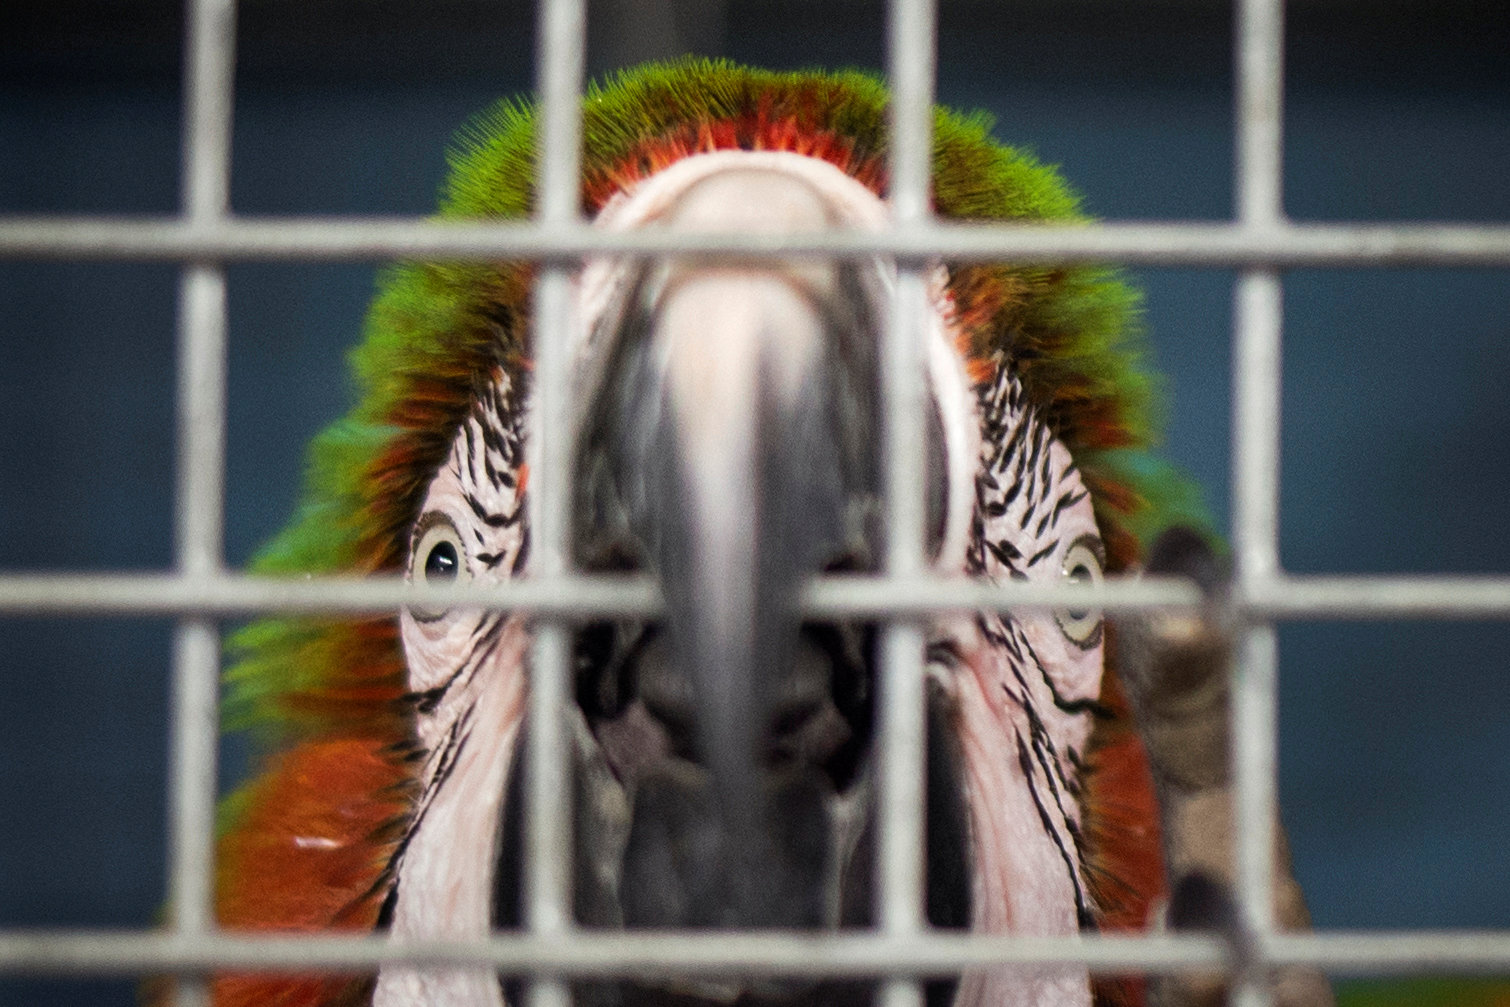 A macaw parrot looks out of it's cage after being put into a shelter ahead of the downfall of Hurricane Irma at the zoo in Miami, Florida, U.S. September 9, 2017.  REUTERS/Adrees Latif